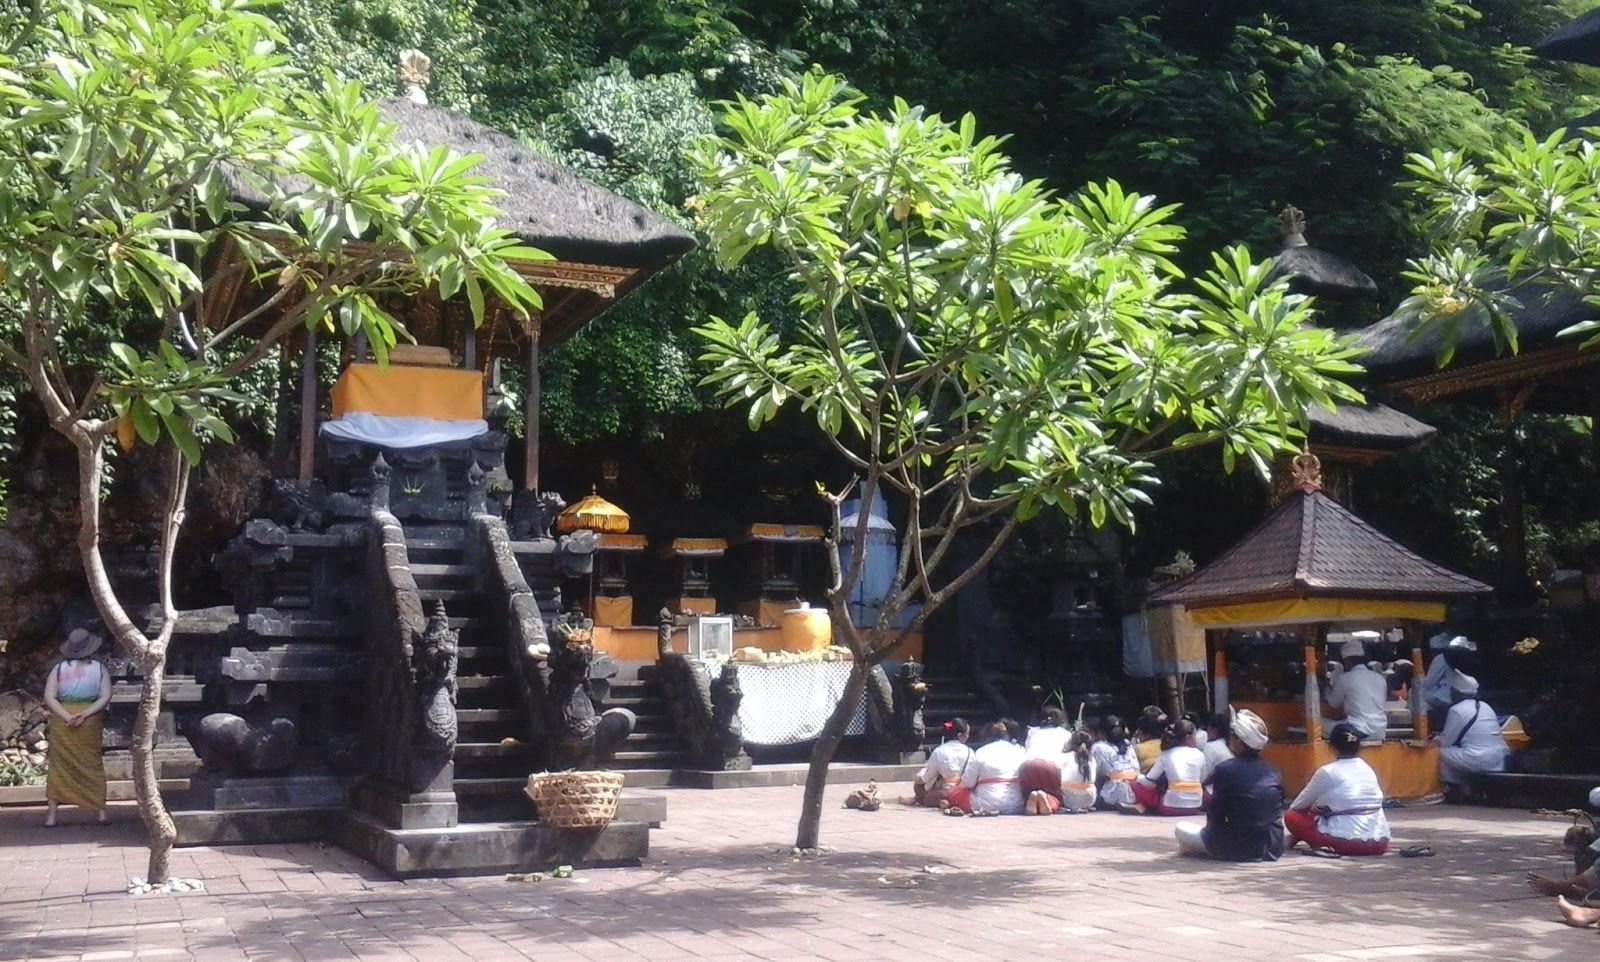 Bat Cave Temple (Pura Goa Lawah) - Pesinggahan, Dawan, Pura Goa Lawah, Bat Cave Temple, Klungkung, Bali, Holidays, Leisure, Attractions